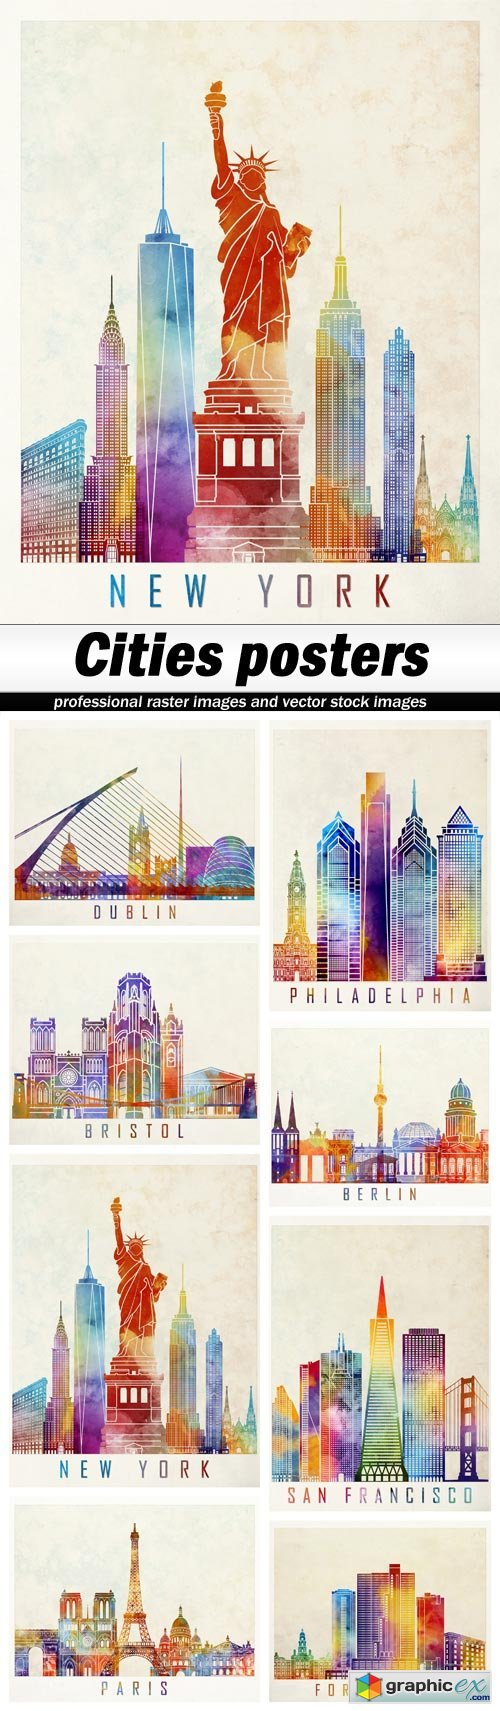 Cities posters - 8 UHQ JPEG